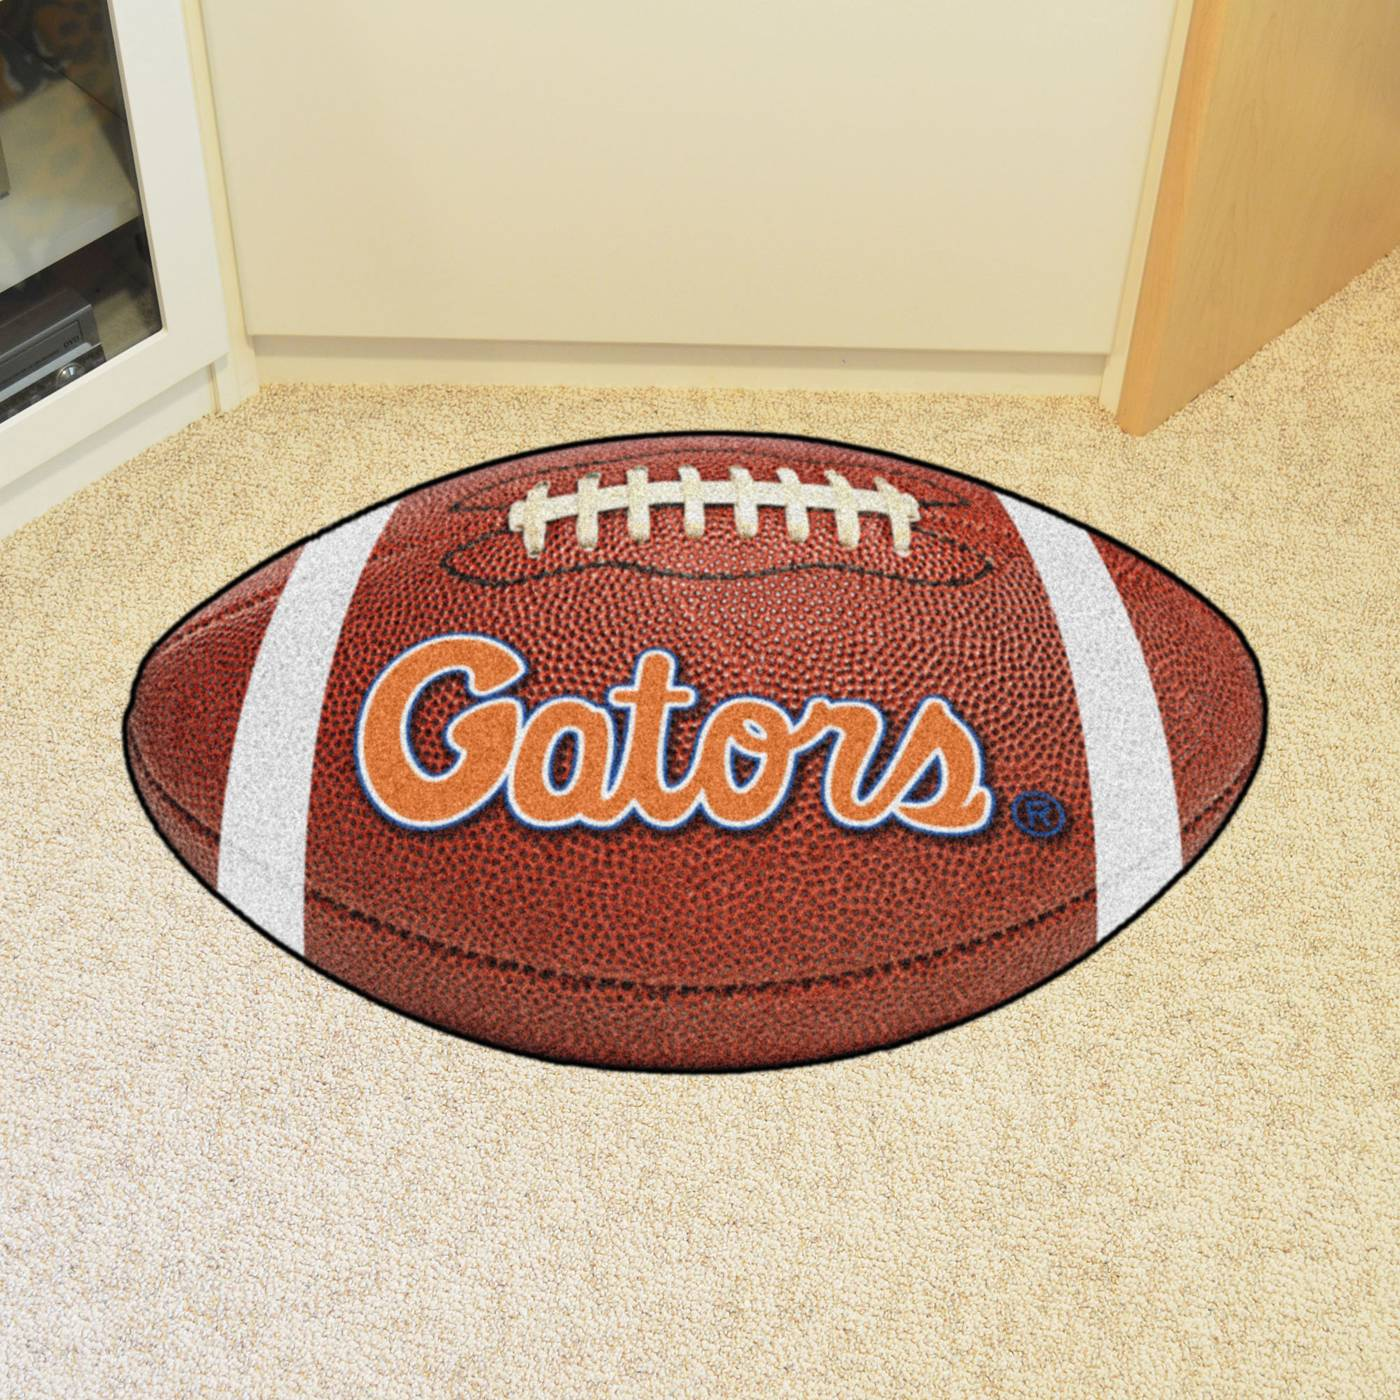 Florida Gators Football Floor Mat. Paint Colors For Family Room. Gold Marble. Jewelry Tree Stand. Rechargeable Lamp. Turquoise Lamps. Desk That Closes. Mirrored Barn Door. In Cabinet Lighting